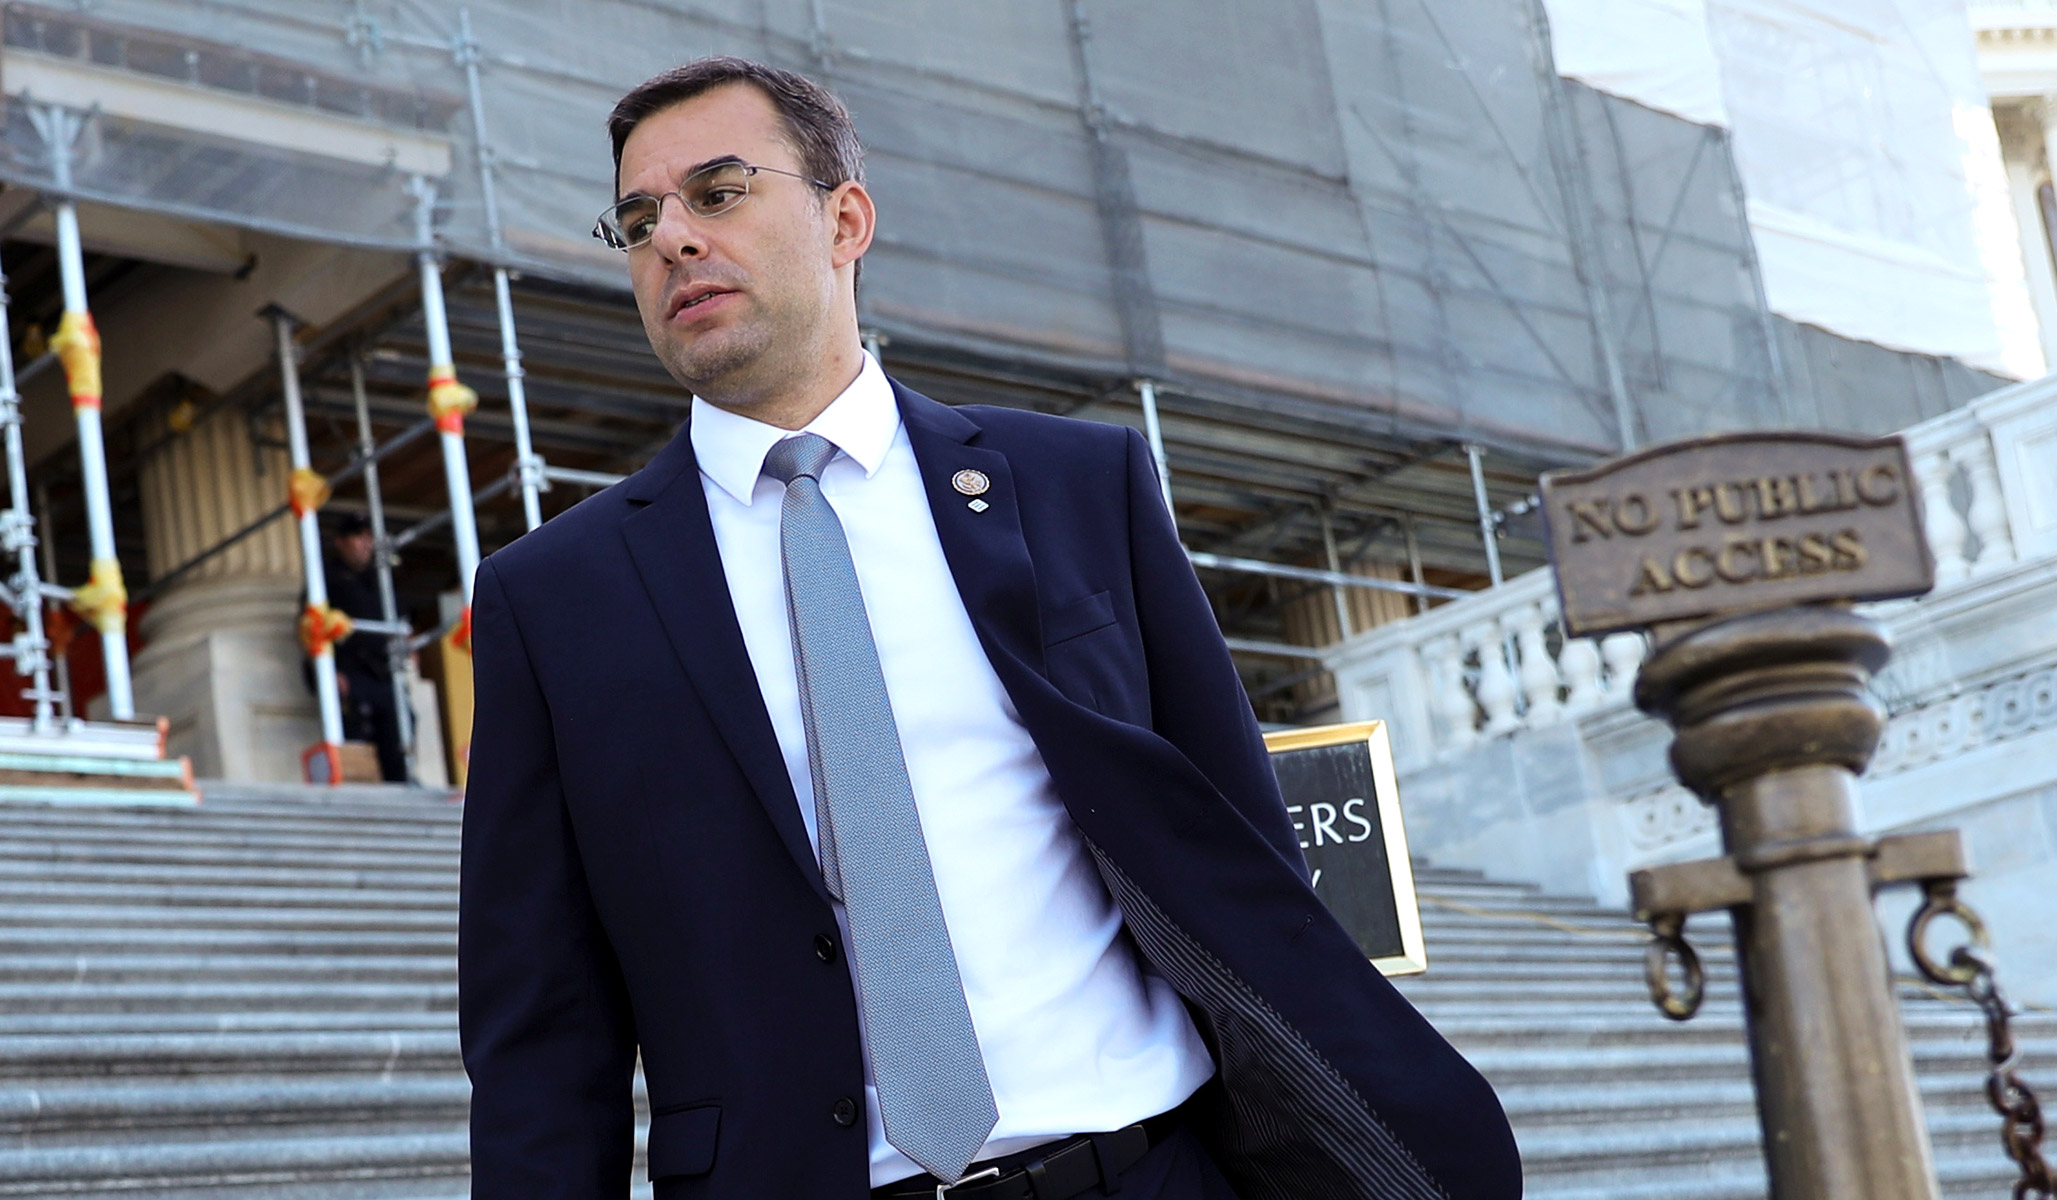 Former Republican Amash Announces He'll Vote Yes on Three Articles of Impeachment